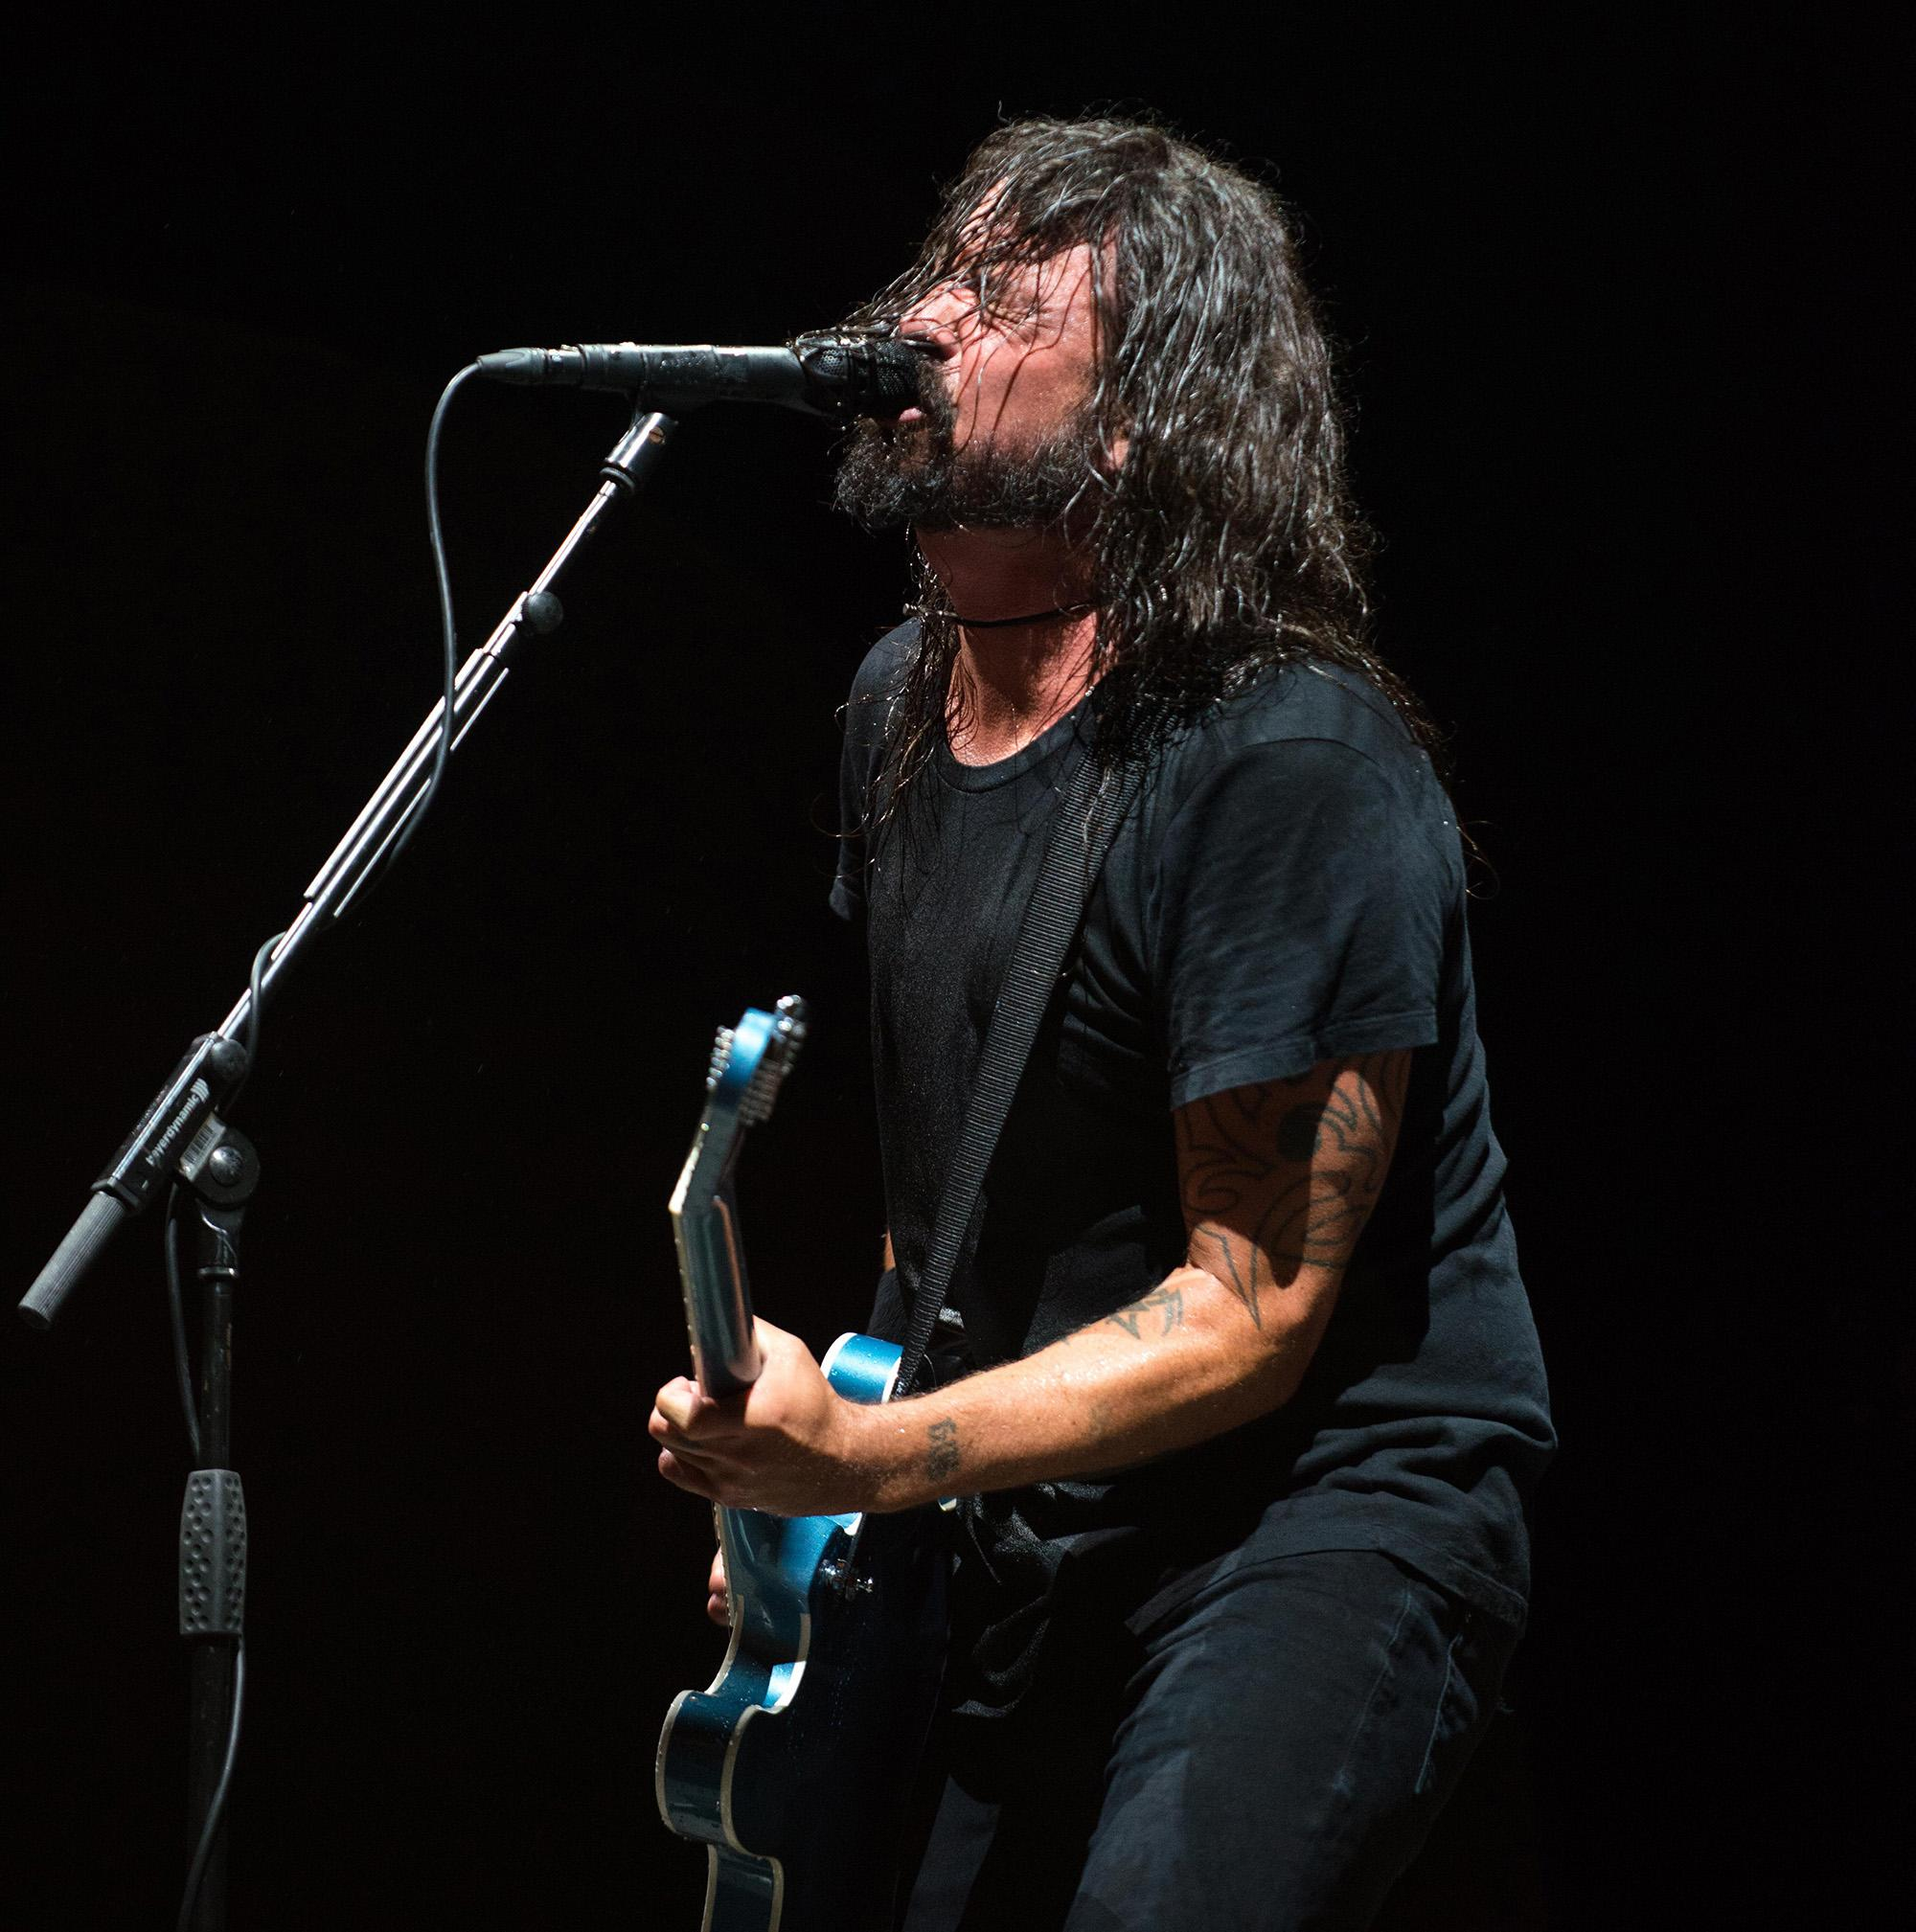 "Foo Fighters rocked the Moda Center on Monday night, playing hits that span their nearly two-decade career. The rockers are touring the globe in support of their latest album, ""Concrete and Gold."" The band recently postponed two Canadian stops after lead singer Dave Grohl lost his voice. (Photo by Tristan Fortsch on September 10, 2018)"